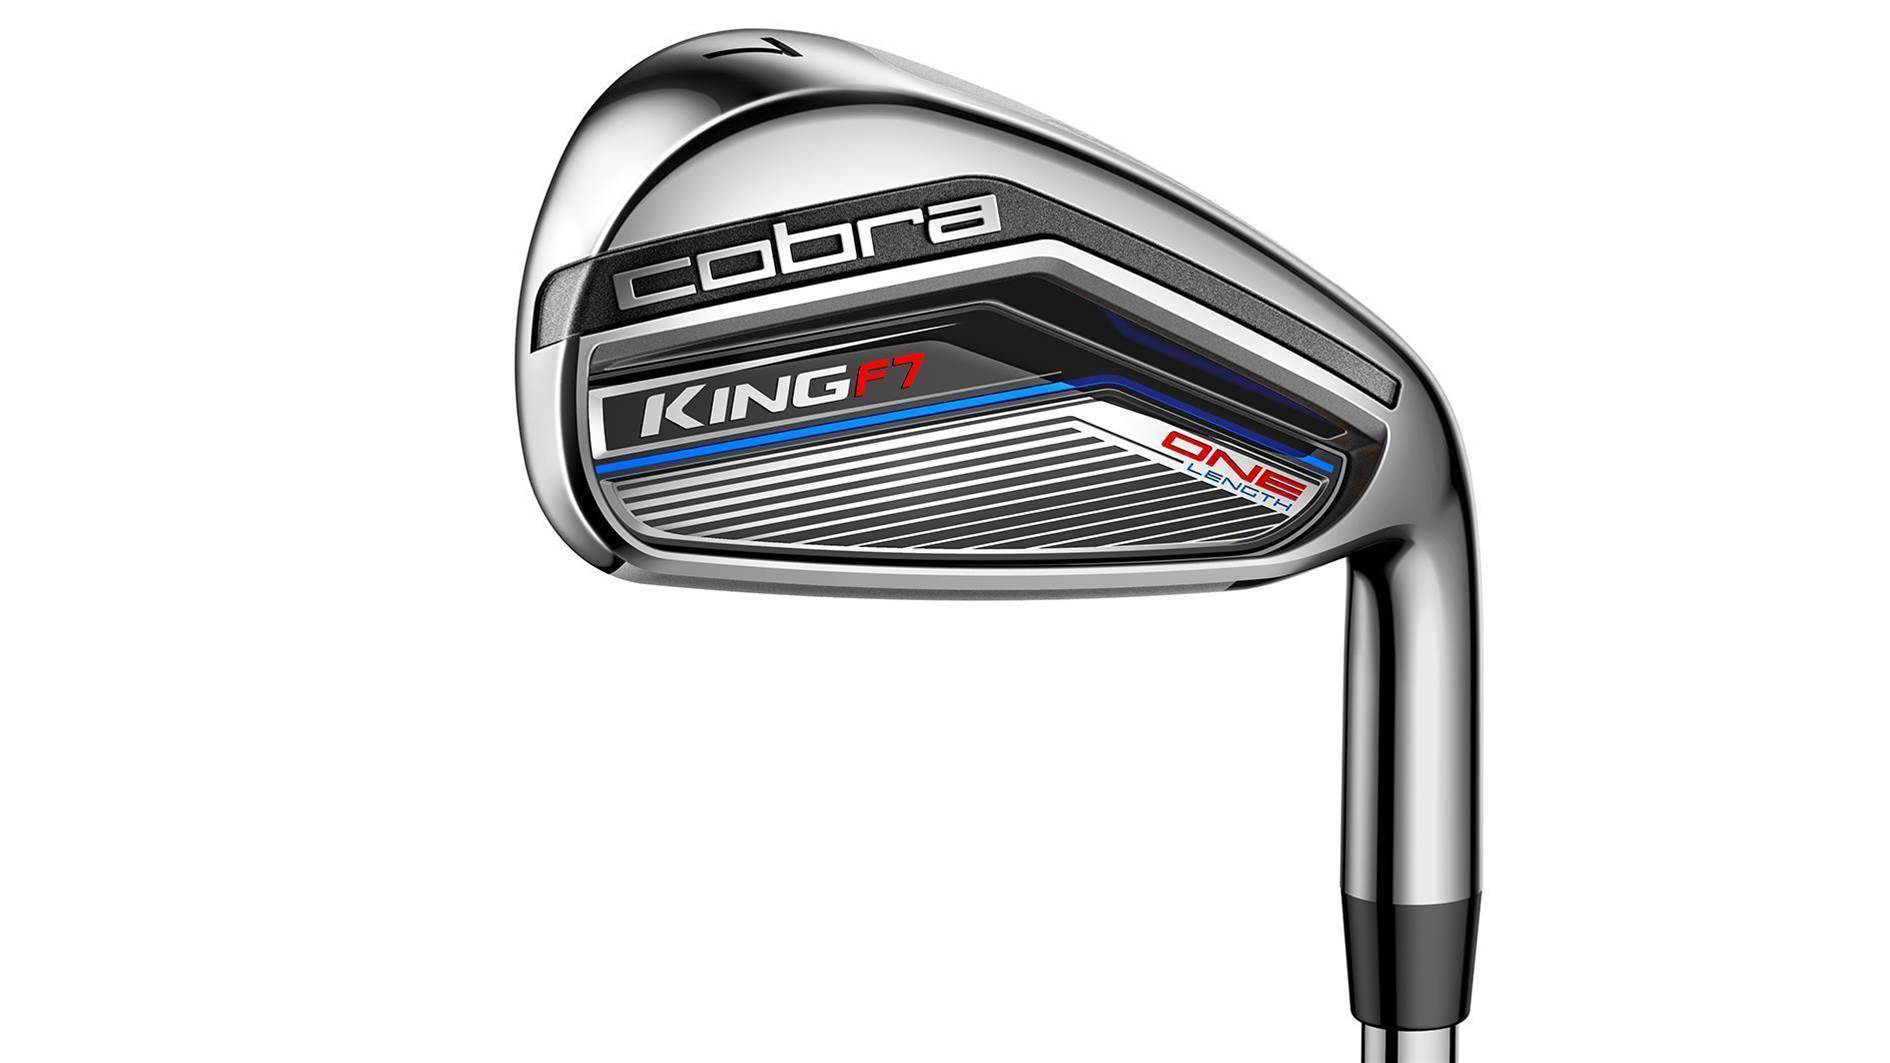 TESTED: Cobra King F7 & King Forged One Length Irons